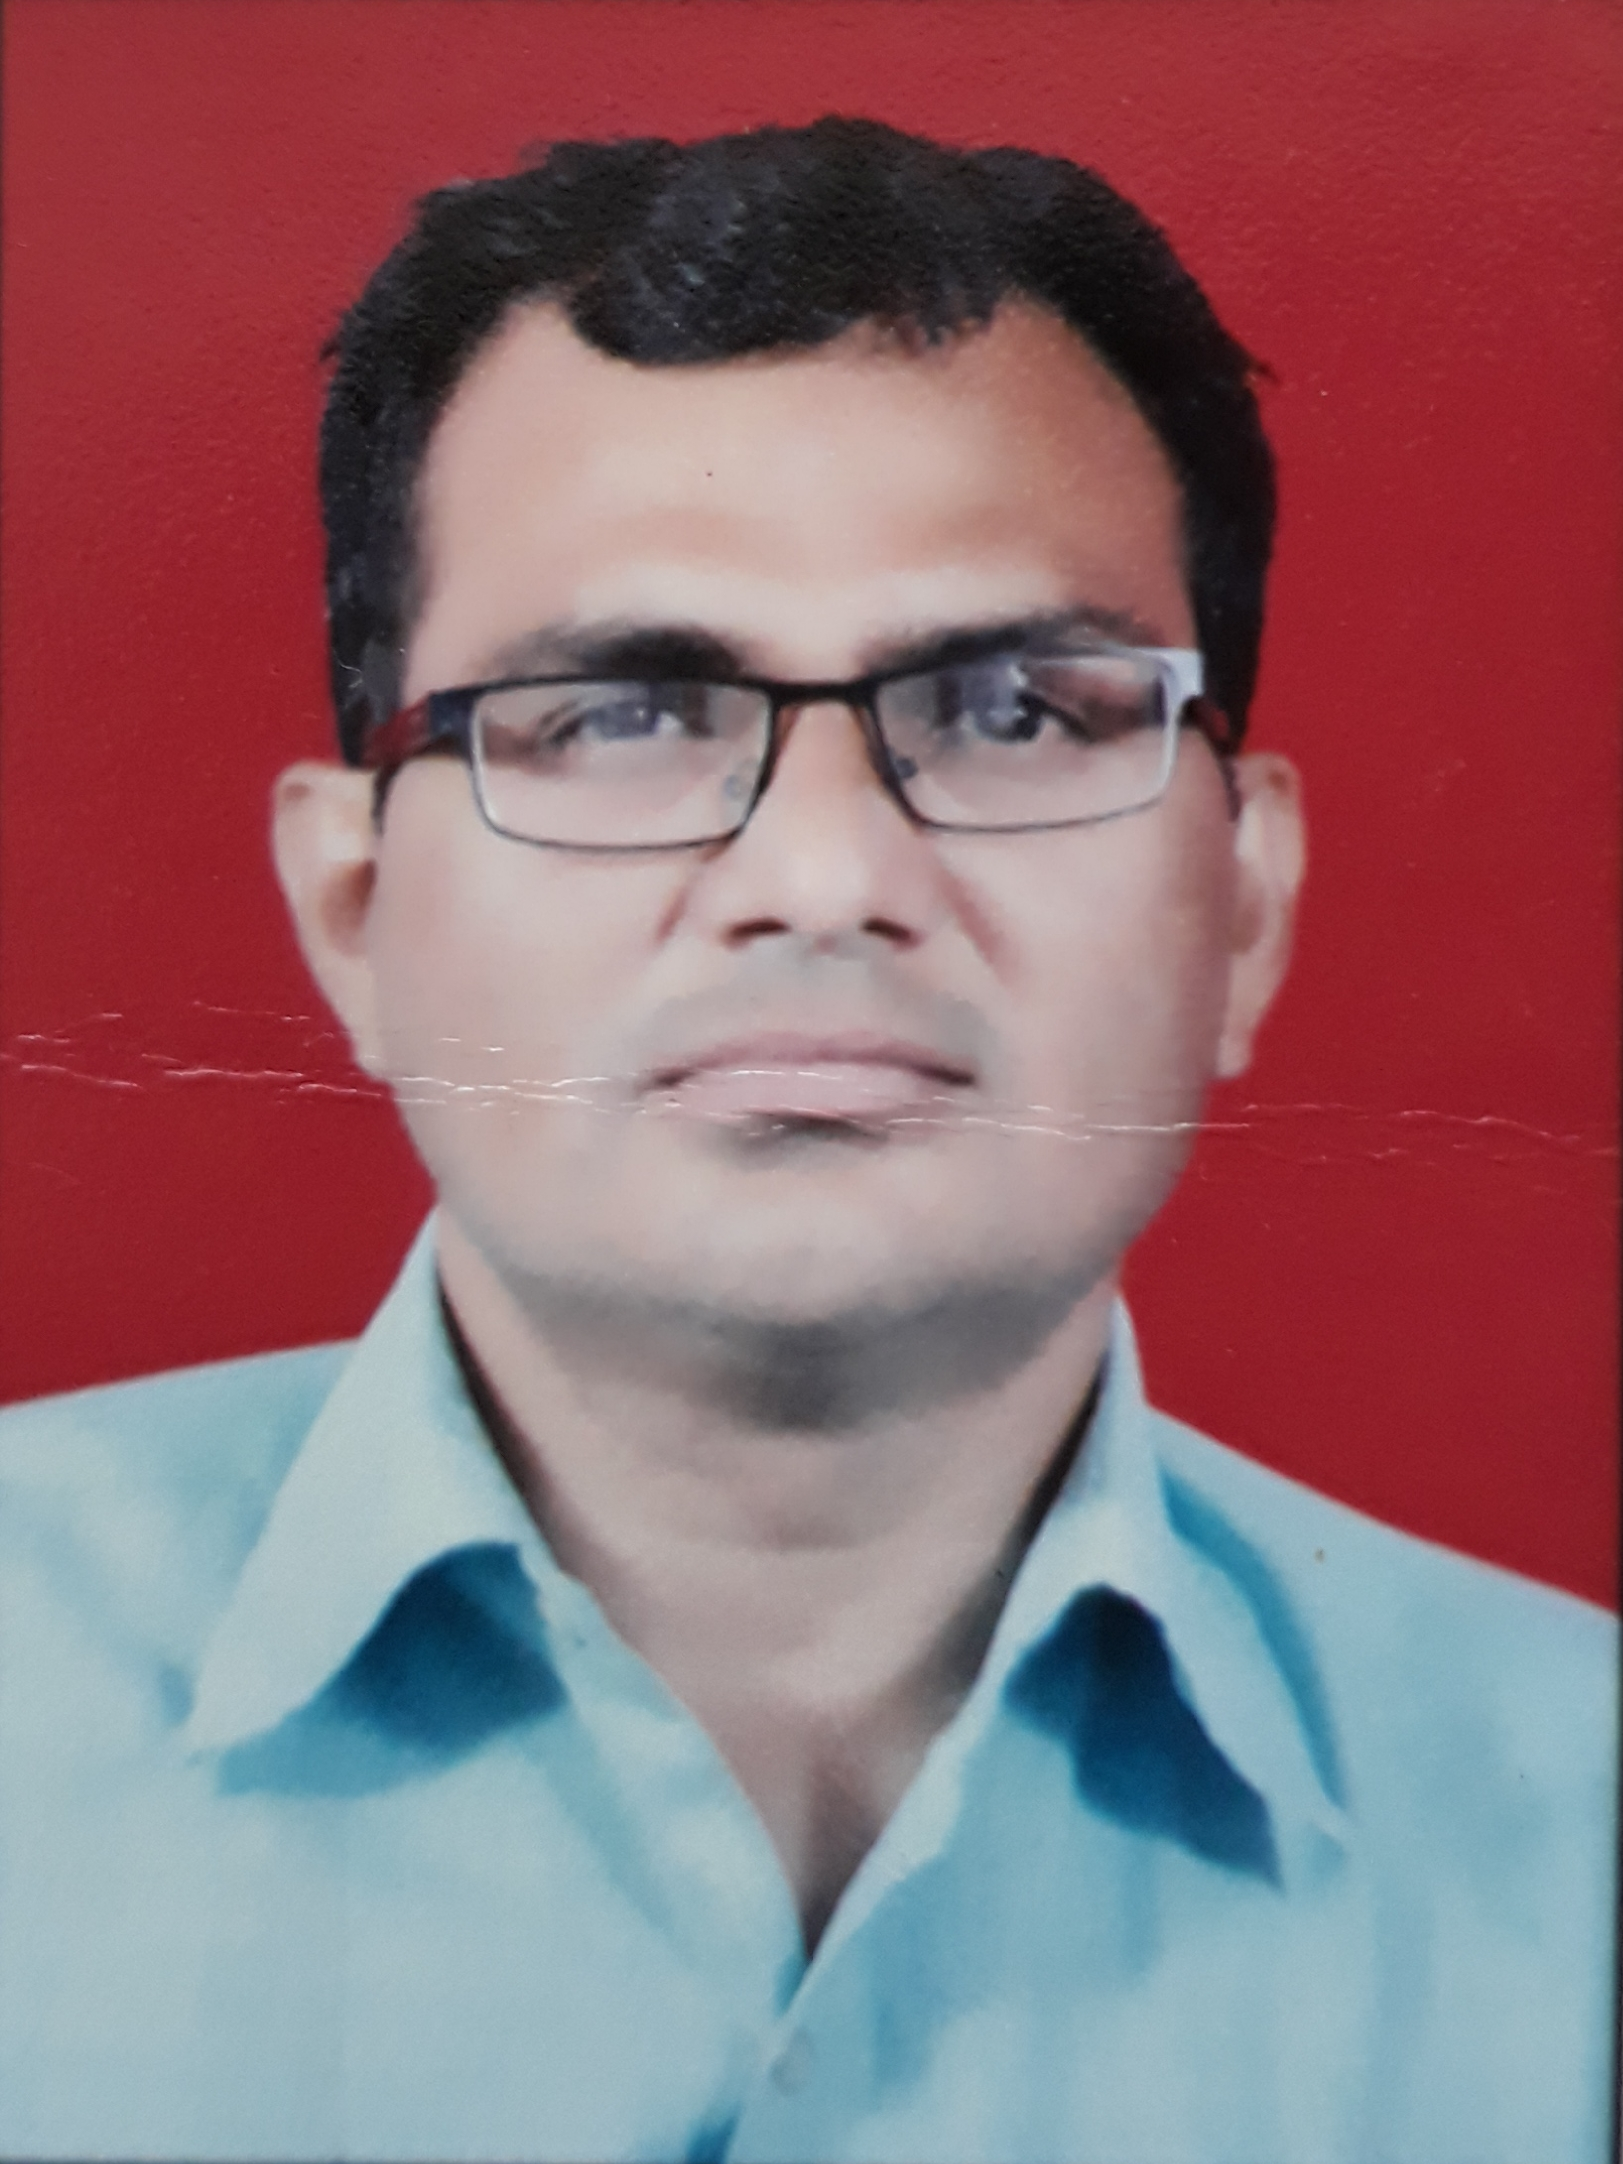 Mr. Ravikant G Rathod